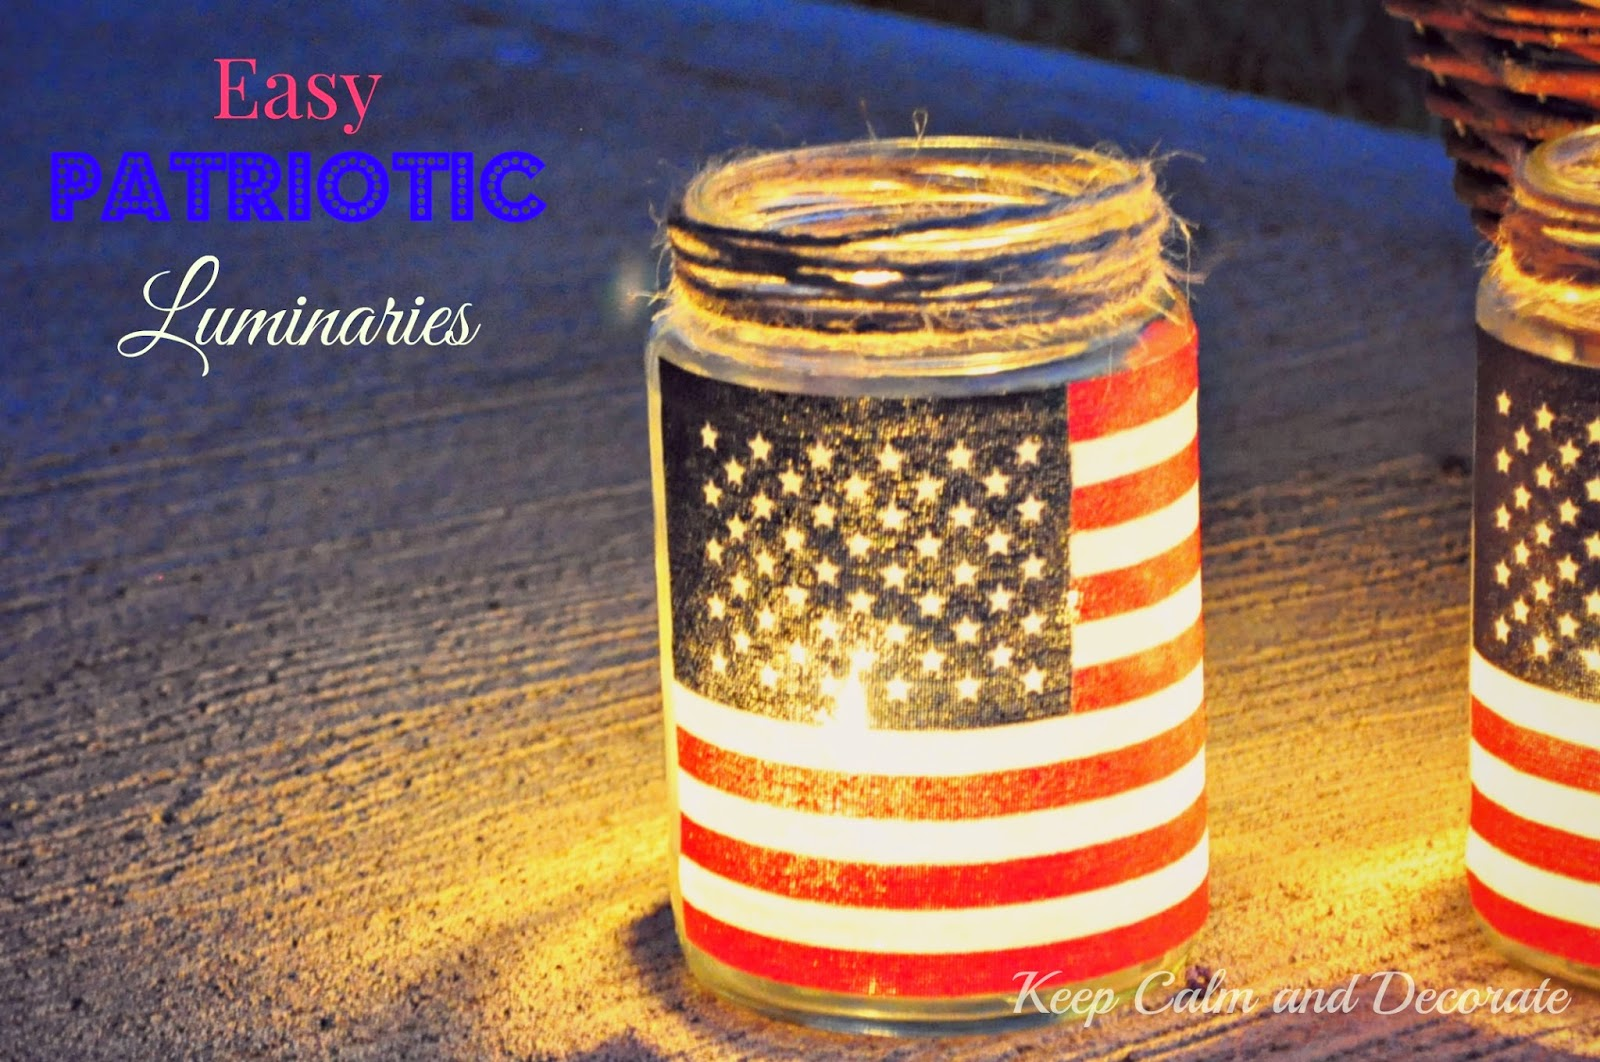 4th of July Lamps, Luminaries, and Lanterns. DIY tutorials and How to's. Add a touch of light to this holiday known for stars and